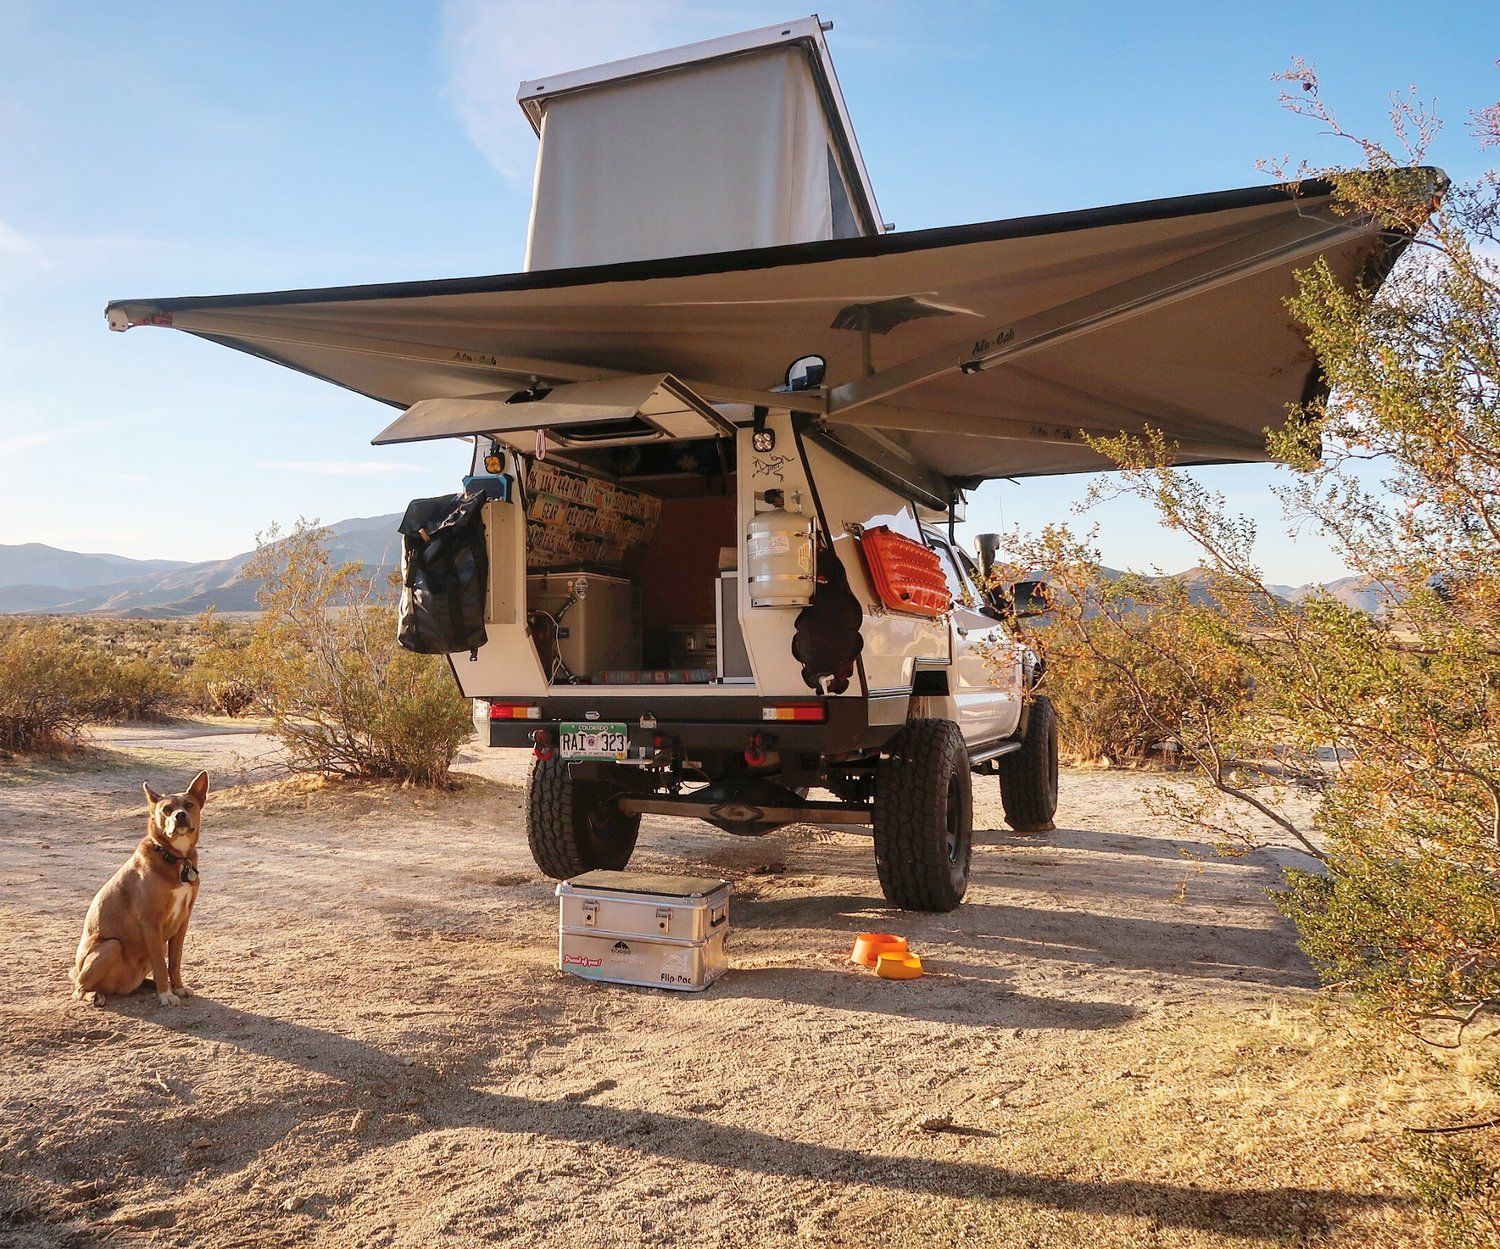 For Sale Overland truck, Overland trailer, Truck tent